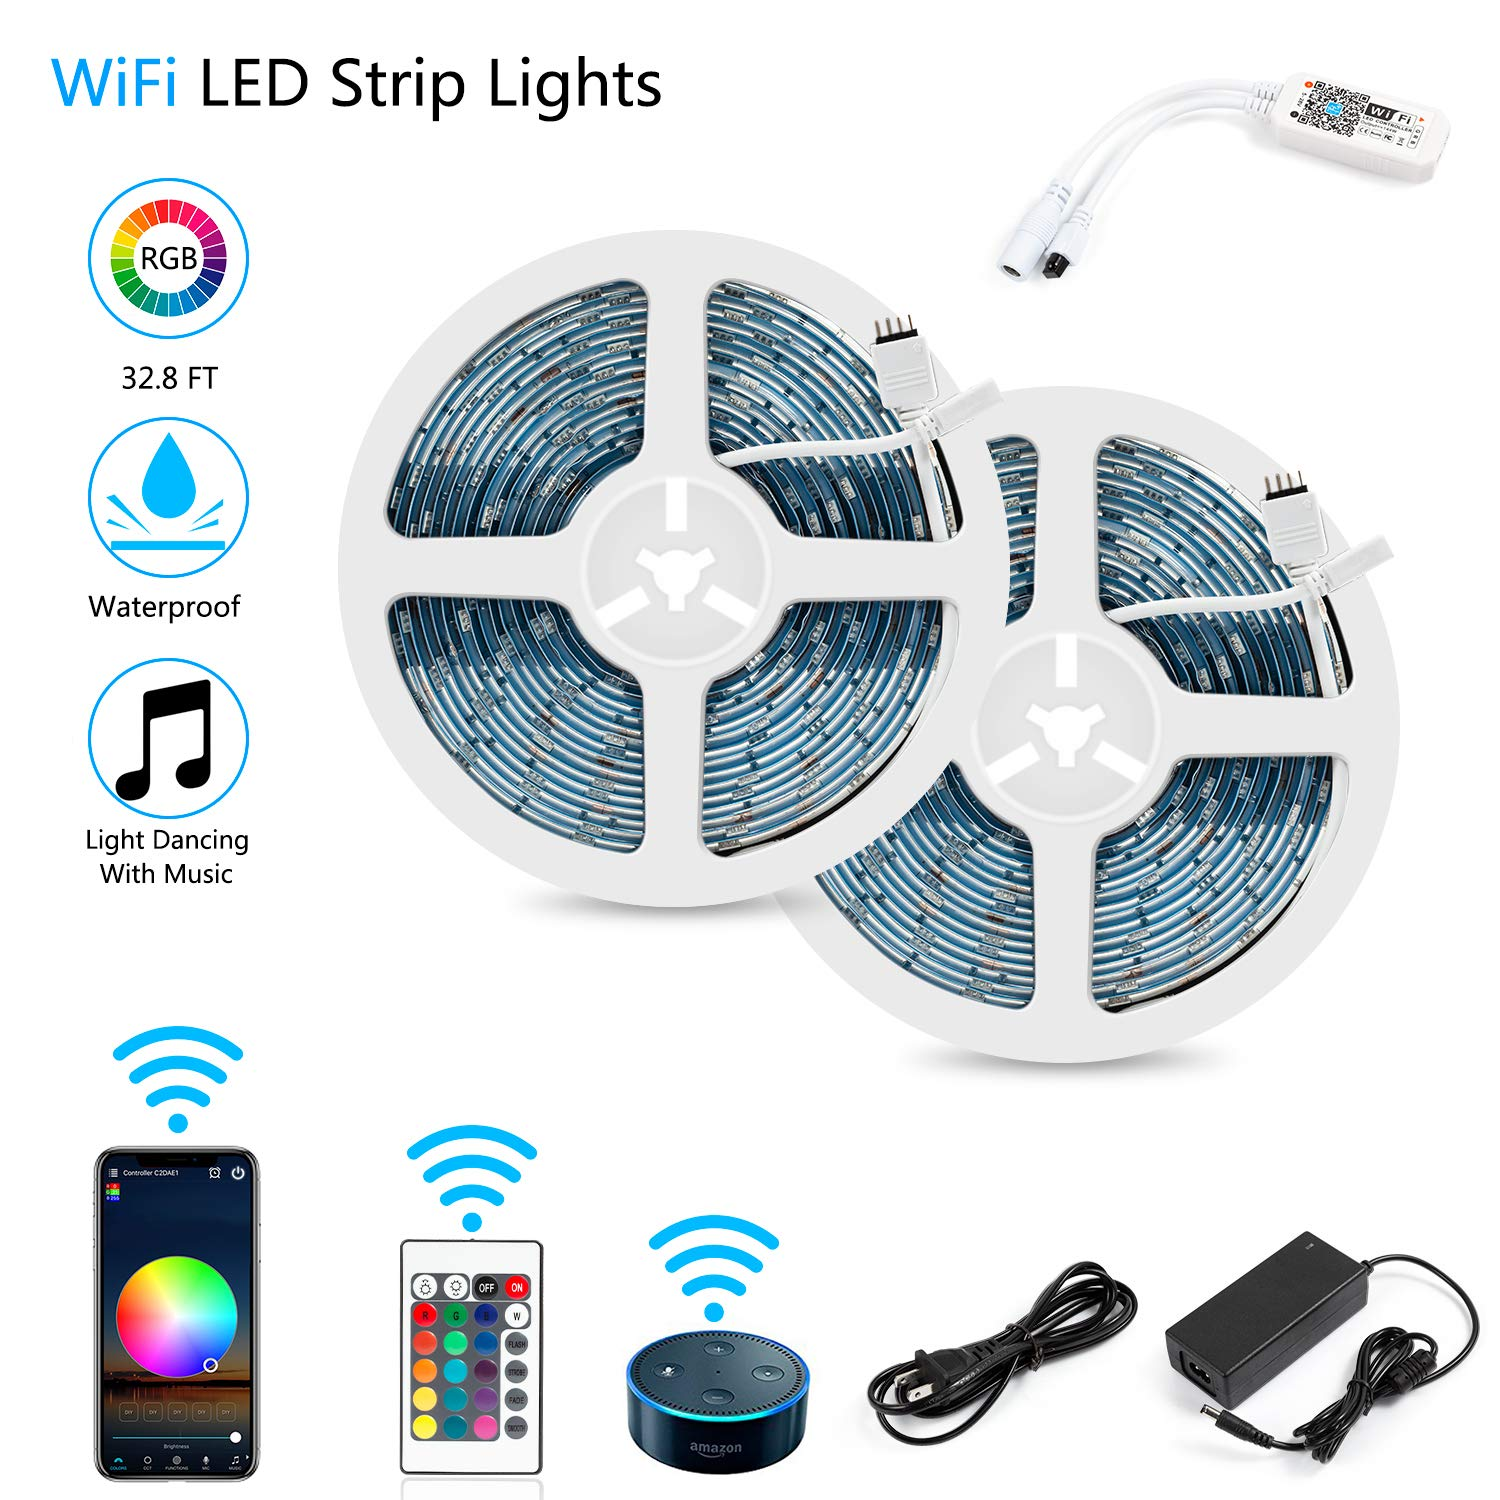 Top 10 Best LED Strip Lights